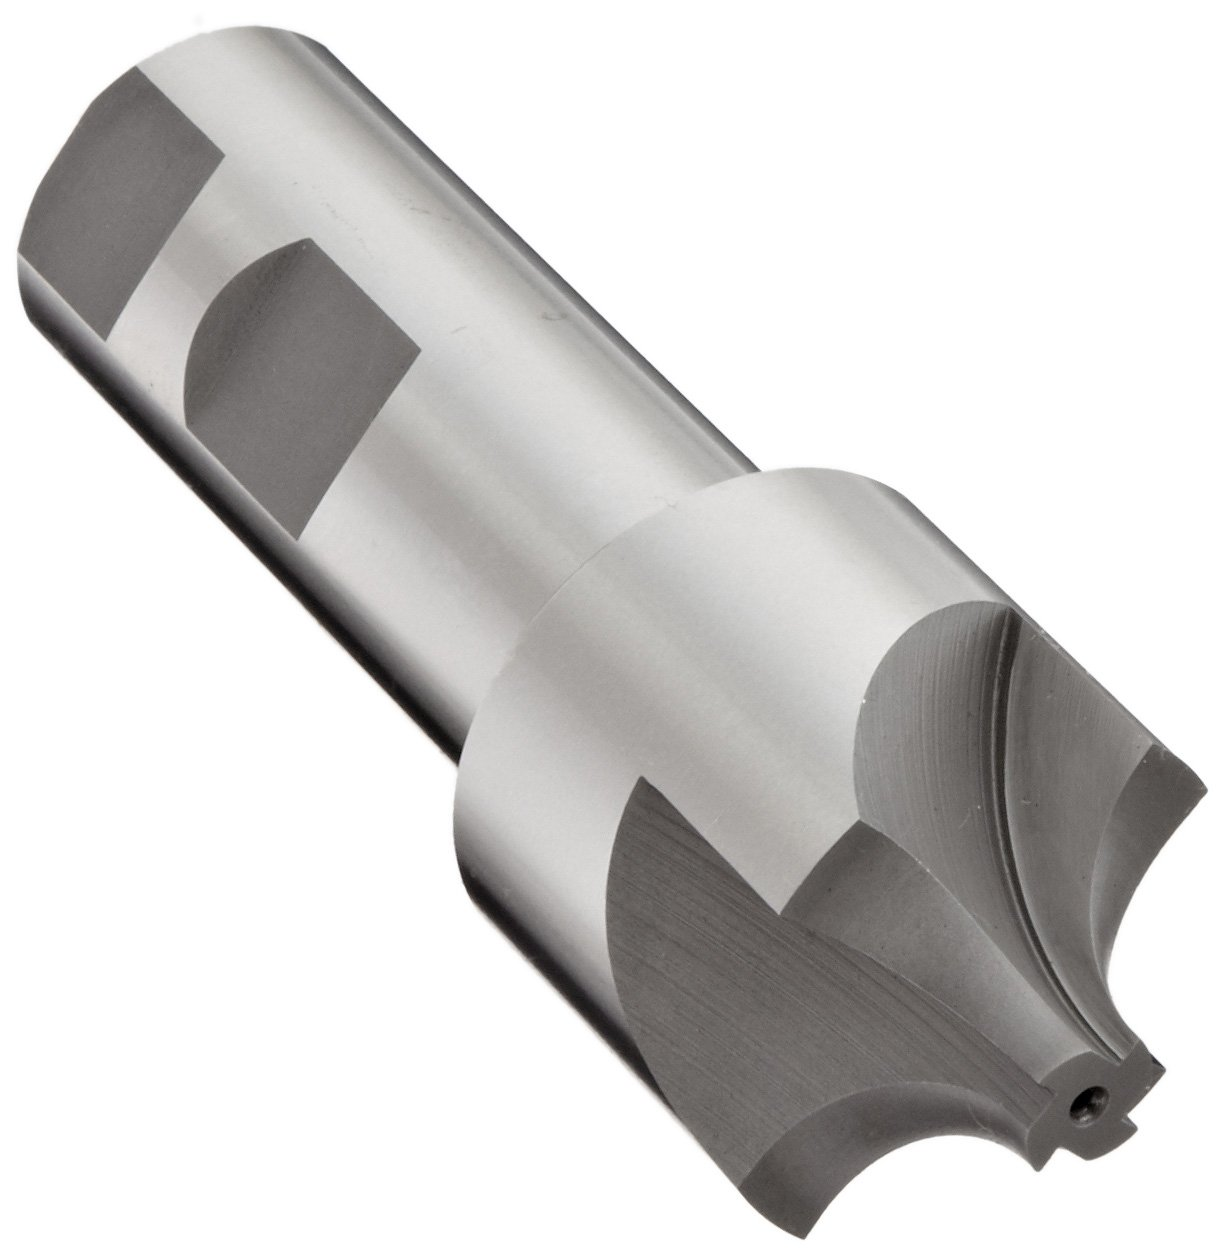 YG-1 E1237 High Speed Steel (HSS) Corner Rounding End Mill, Weldon Shank, Uncoated (Bright) Finish, Non-Center Cutting, 4 Flutes, 3'' Overall Length, 1'' Cutting Diameter, 0.5'' Shank Diameter